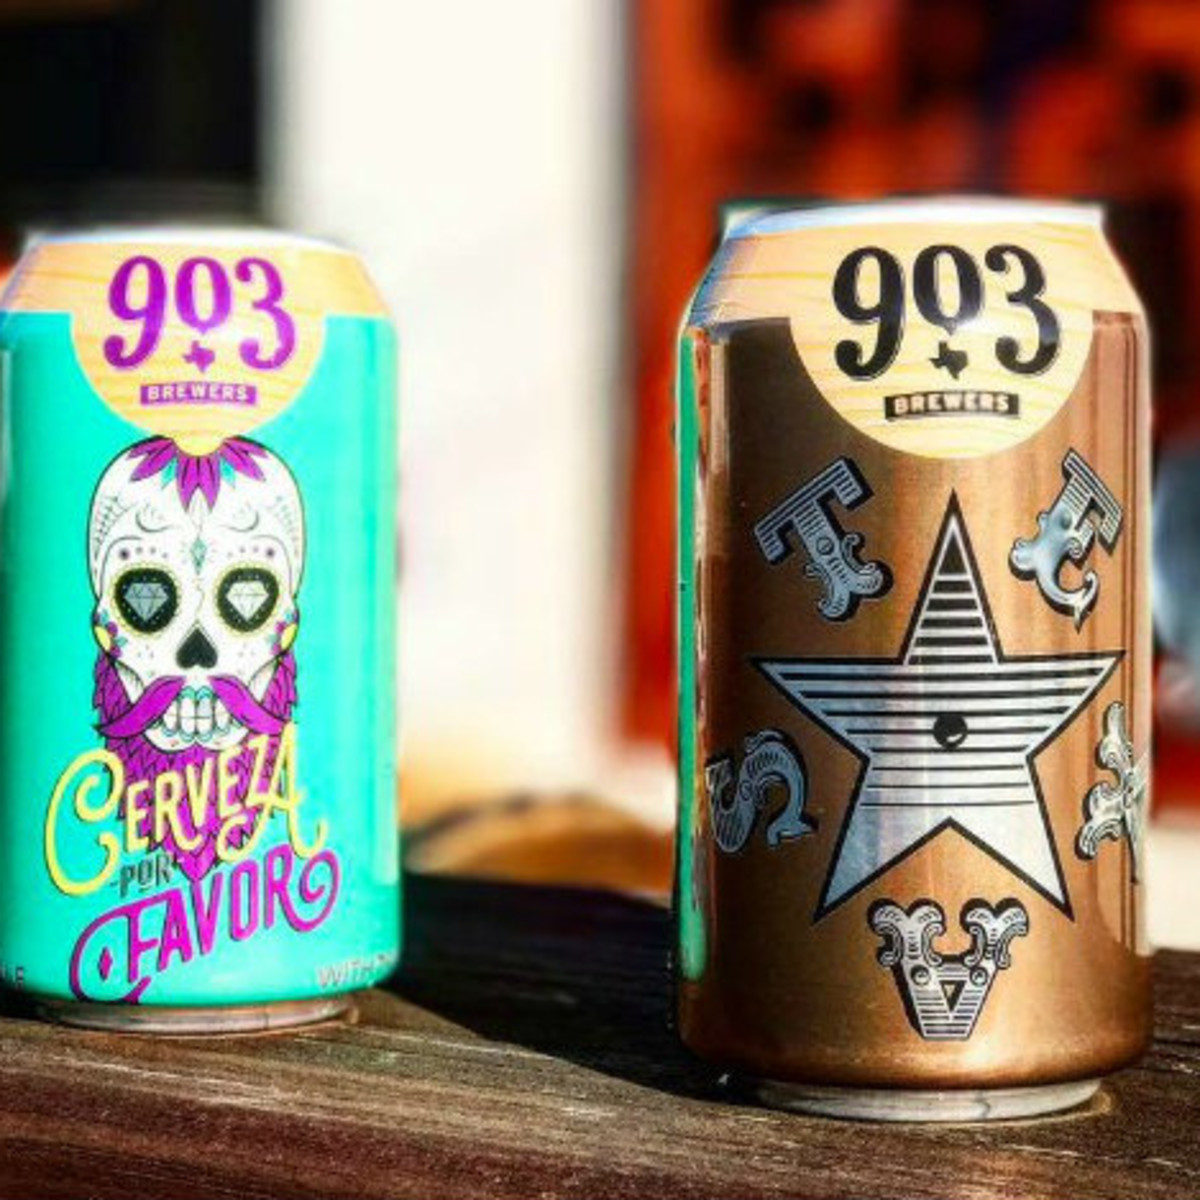 903 Brewers/Facebook